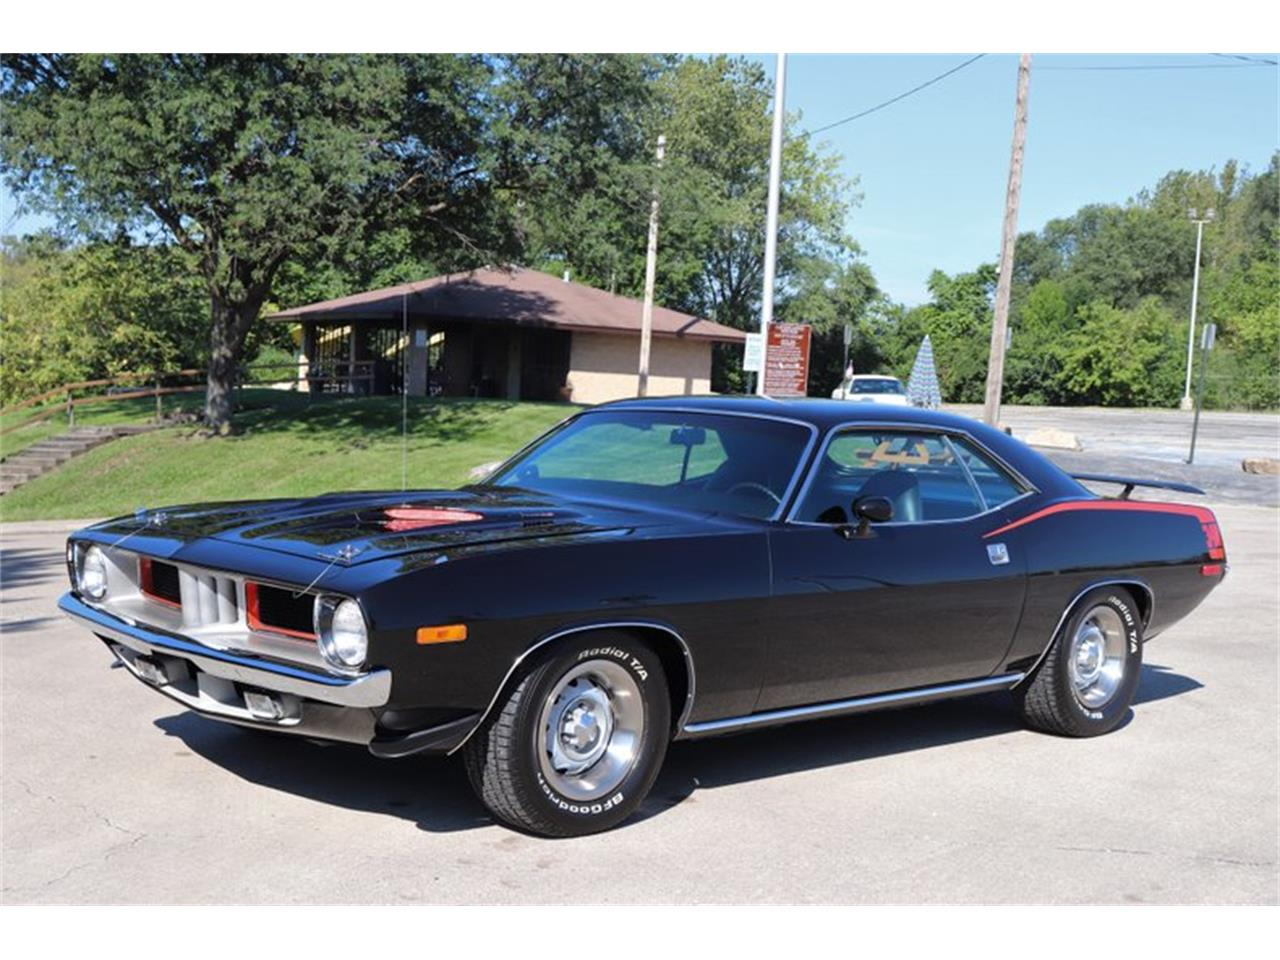 1972 plymouth cuda for sale classiccars cc 1141095 1968 Chevy Nomad large picture of 72 cuda ogh3